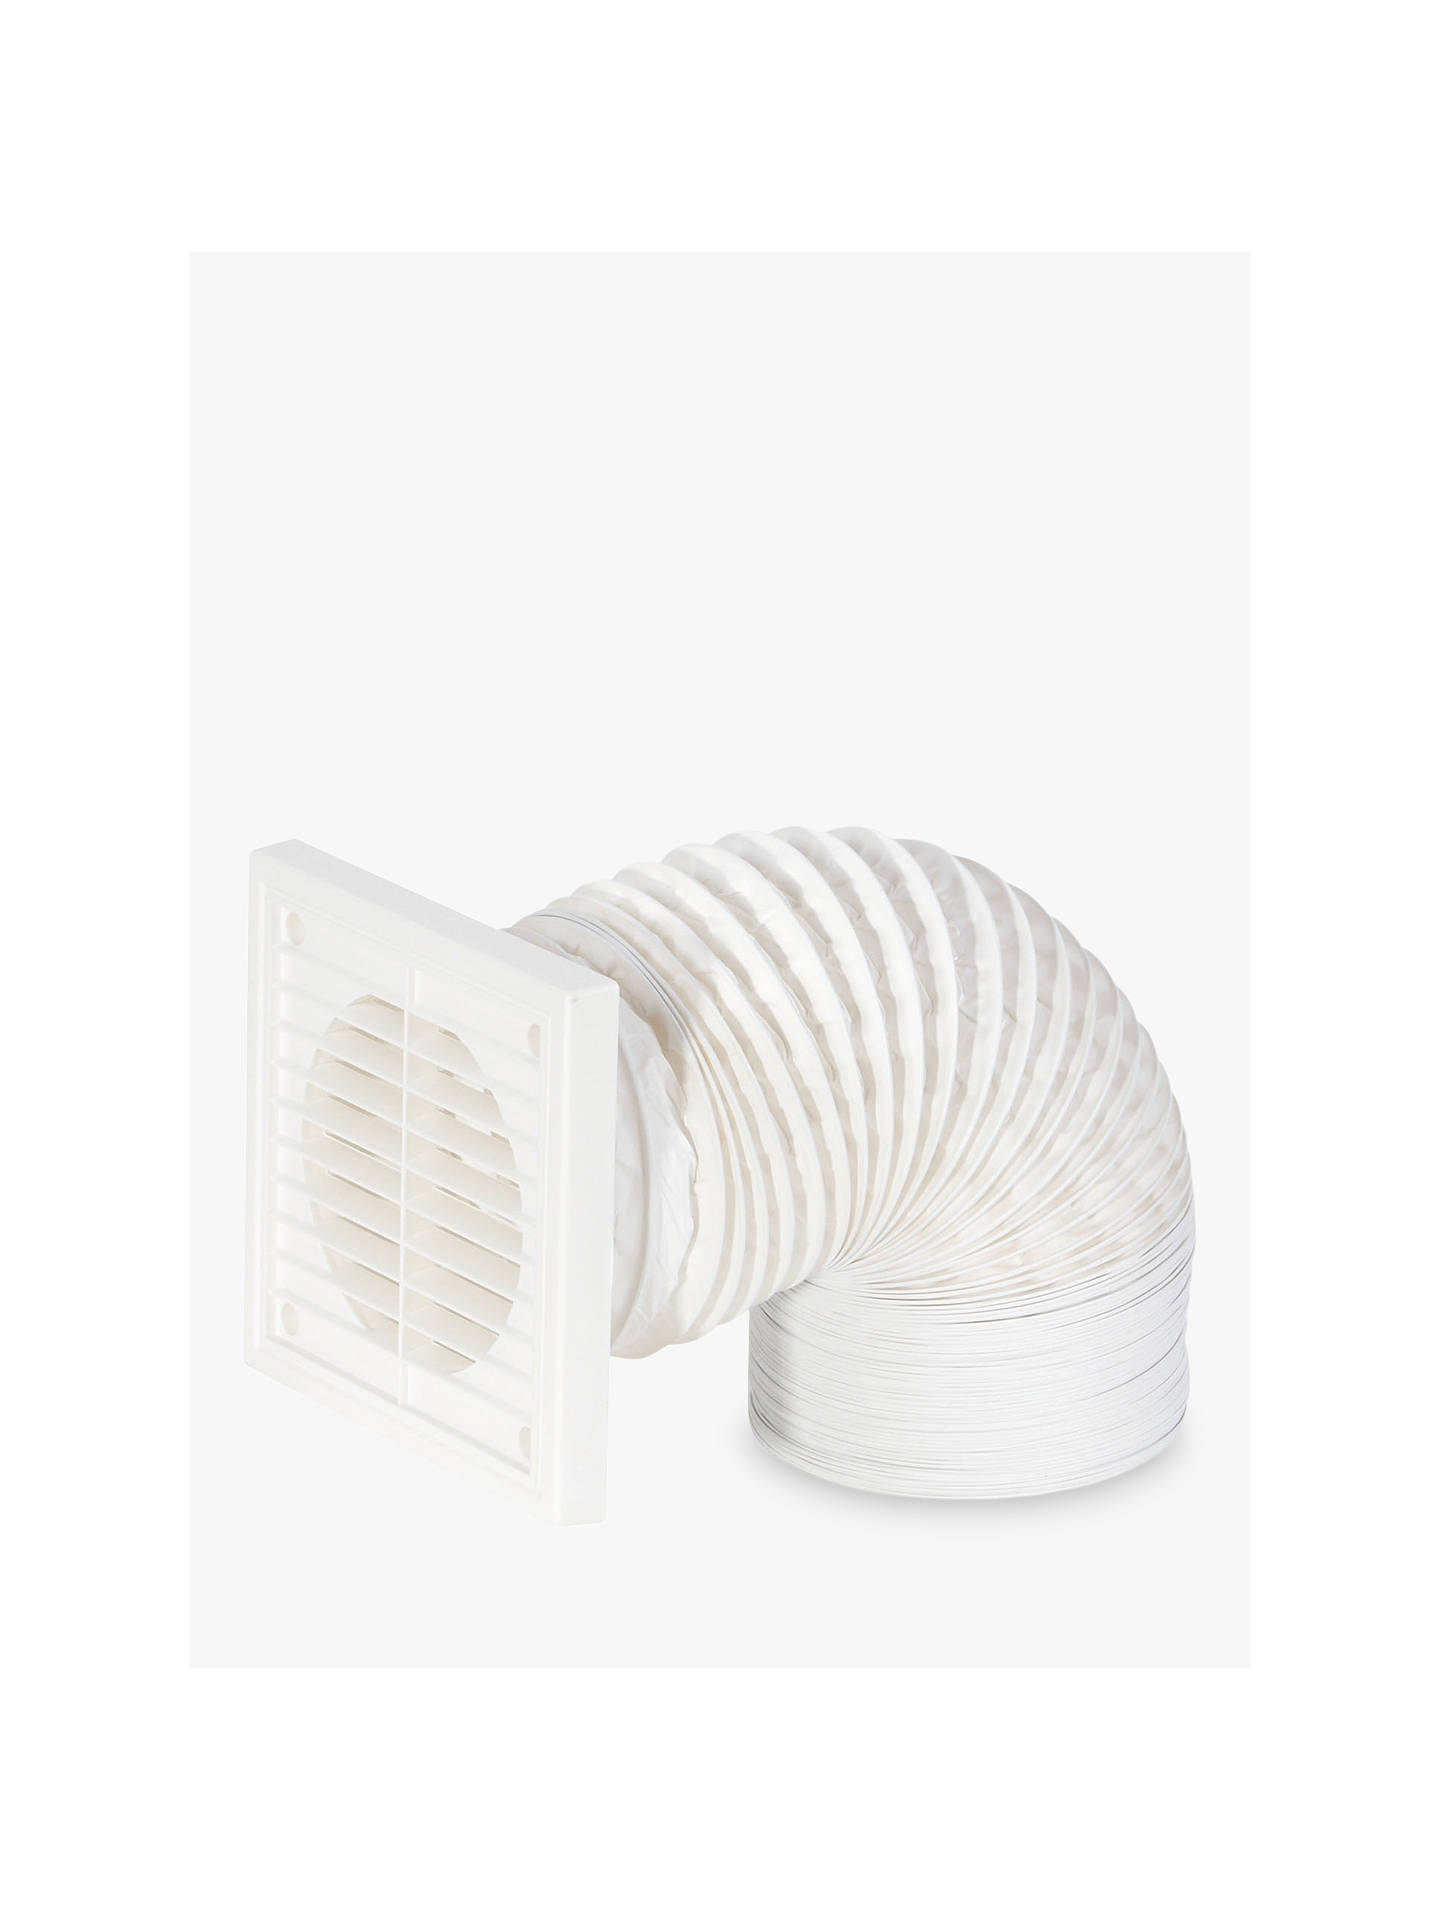 BuyJohn Lewis & Partners Venting Flexible Duct Kit, White Online at johnlewis.com